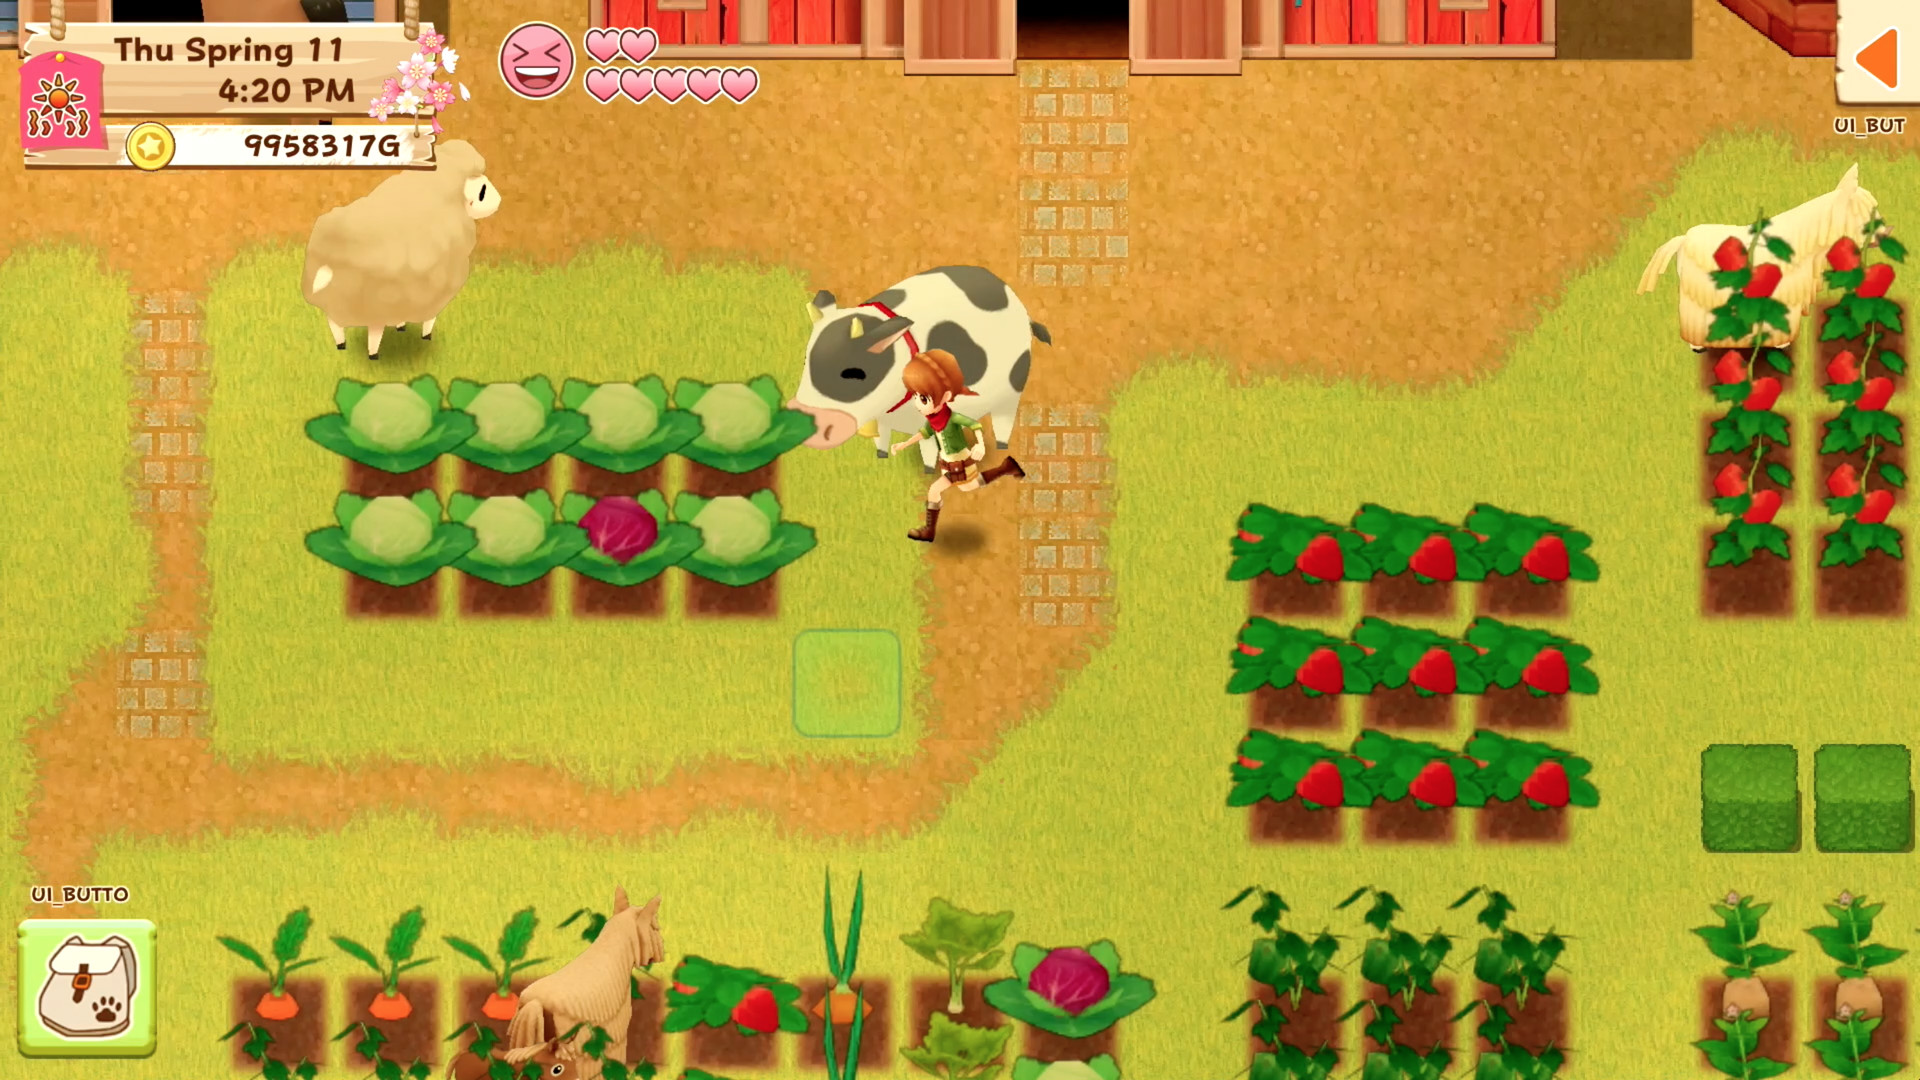 Harvest Moon: Light of Hope - Imagem 1 do software